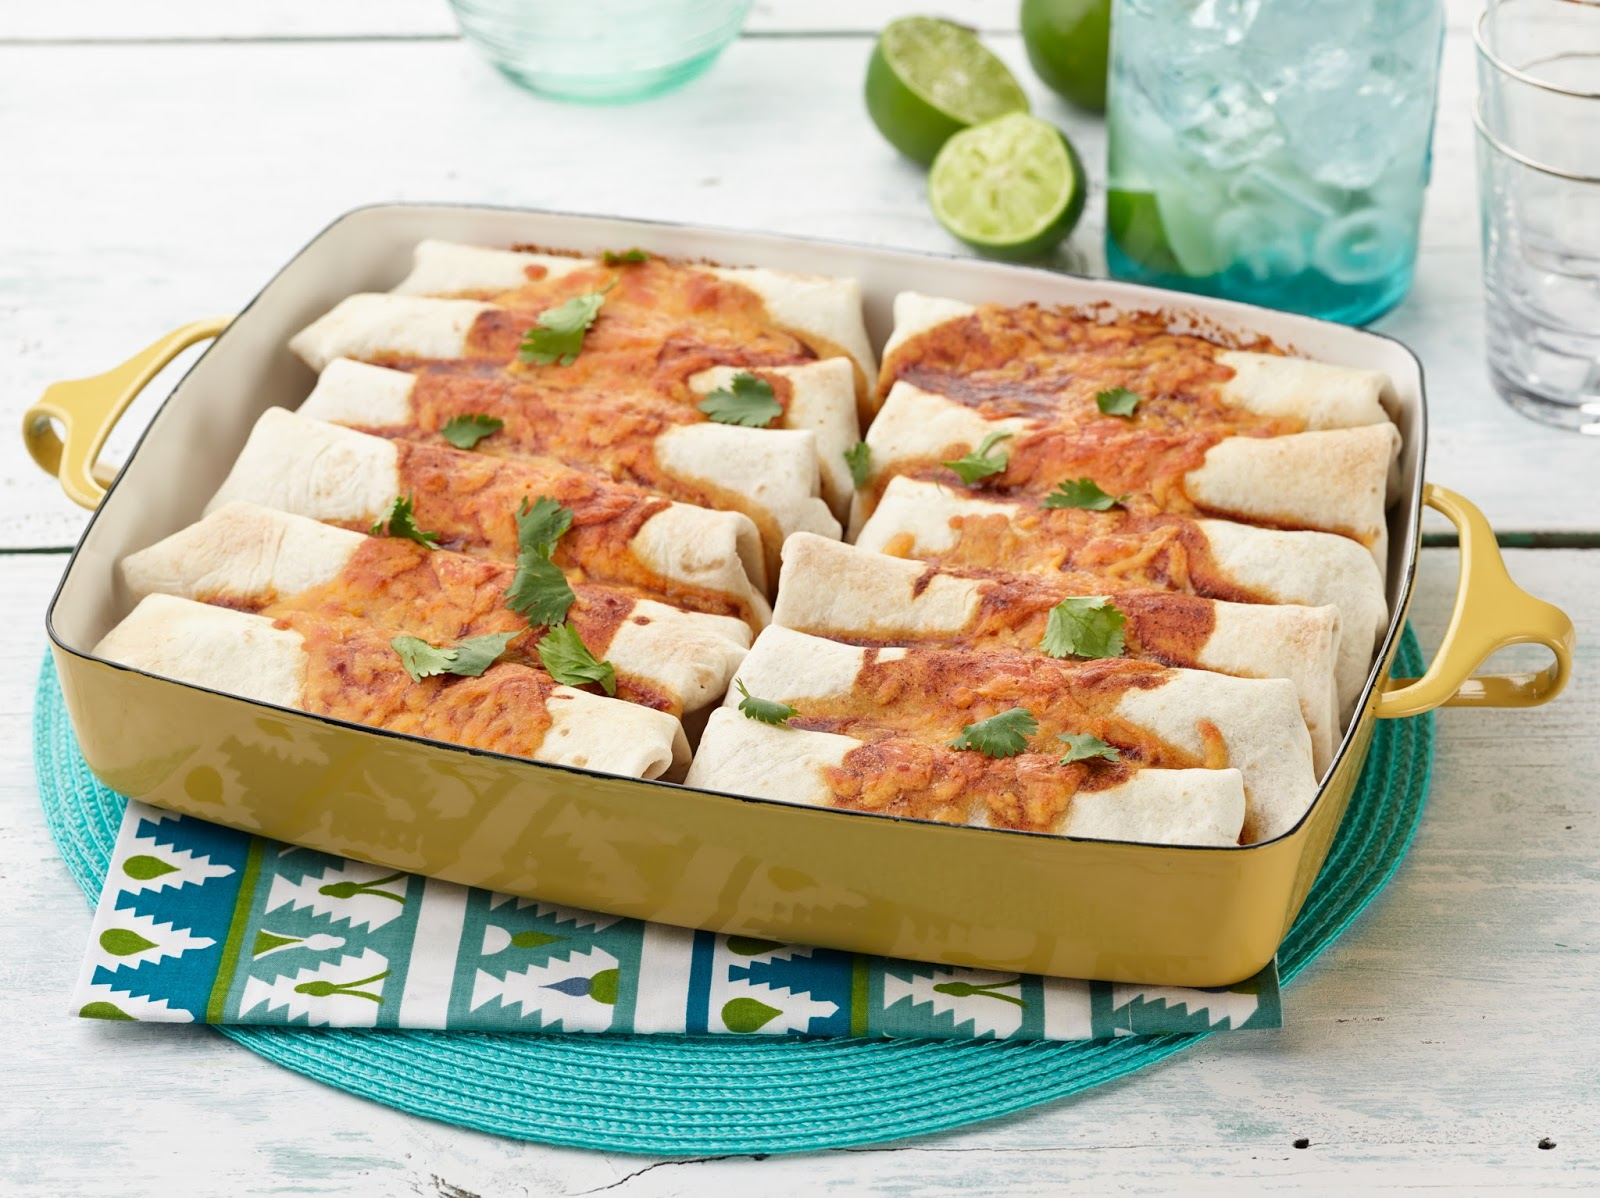 Beef and Bean Burritos- The Pioneer Woman. Ground beef, 2 lbs. 1 medium onion, diced; 1/2 tsp ground cumin; 1/4 tsp oregano; 1/4 tsp chili powder; 1/4 tsp salt; 14 oz. enchilada sauce; 28 oz. refried beans; 3/4 cup grated cheddar cheese, plus more for sprinkling on top; 12 burrito-size flour tortillas; fresh cilantro; In a large skillet over medium heat, cook the ground beef and onion.